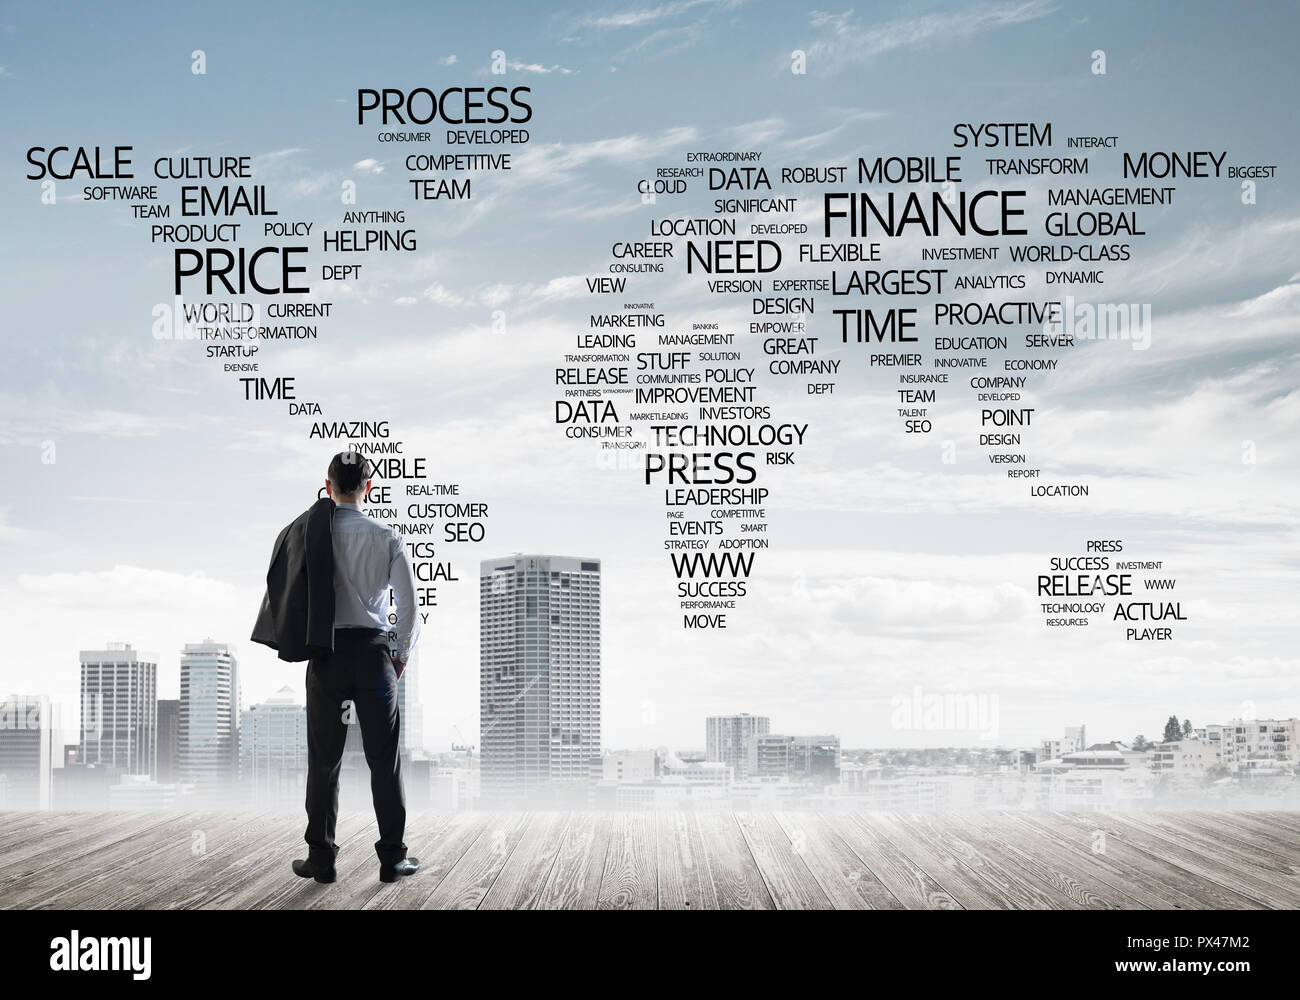 Motivation And Inspiration Concept With Modern Cityscape And Businessman Observing It Stock Photo Alamy